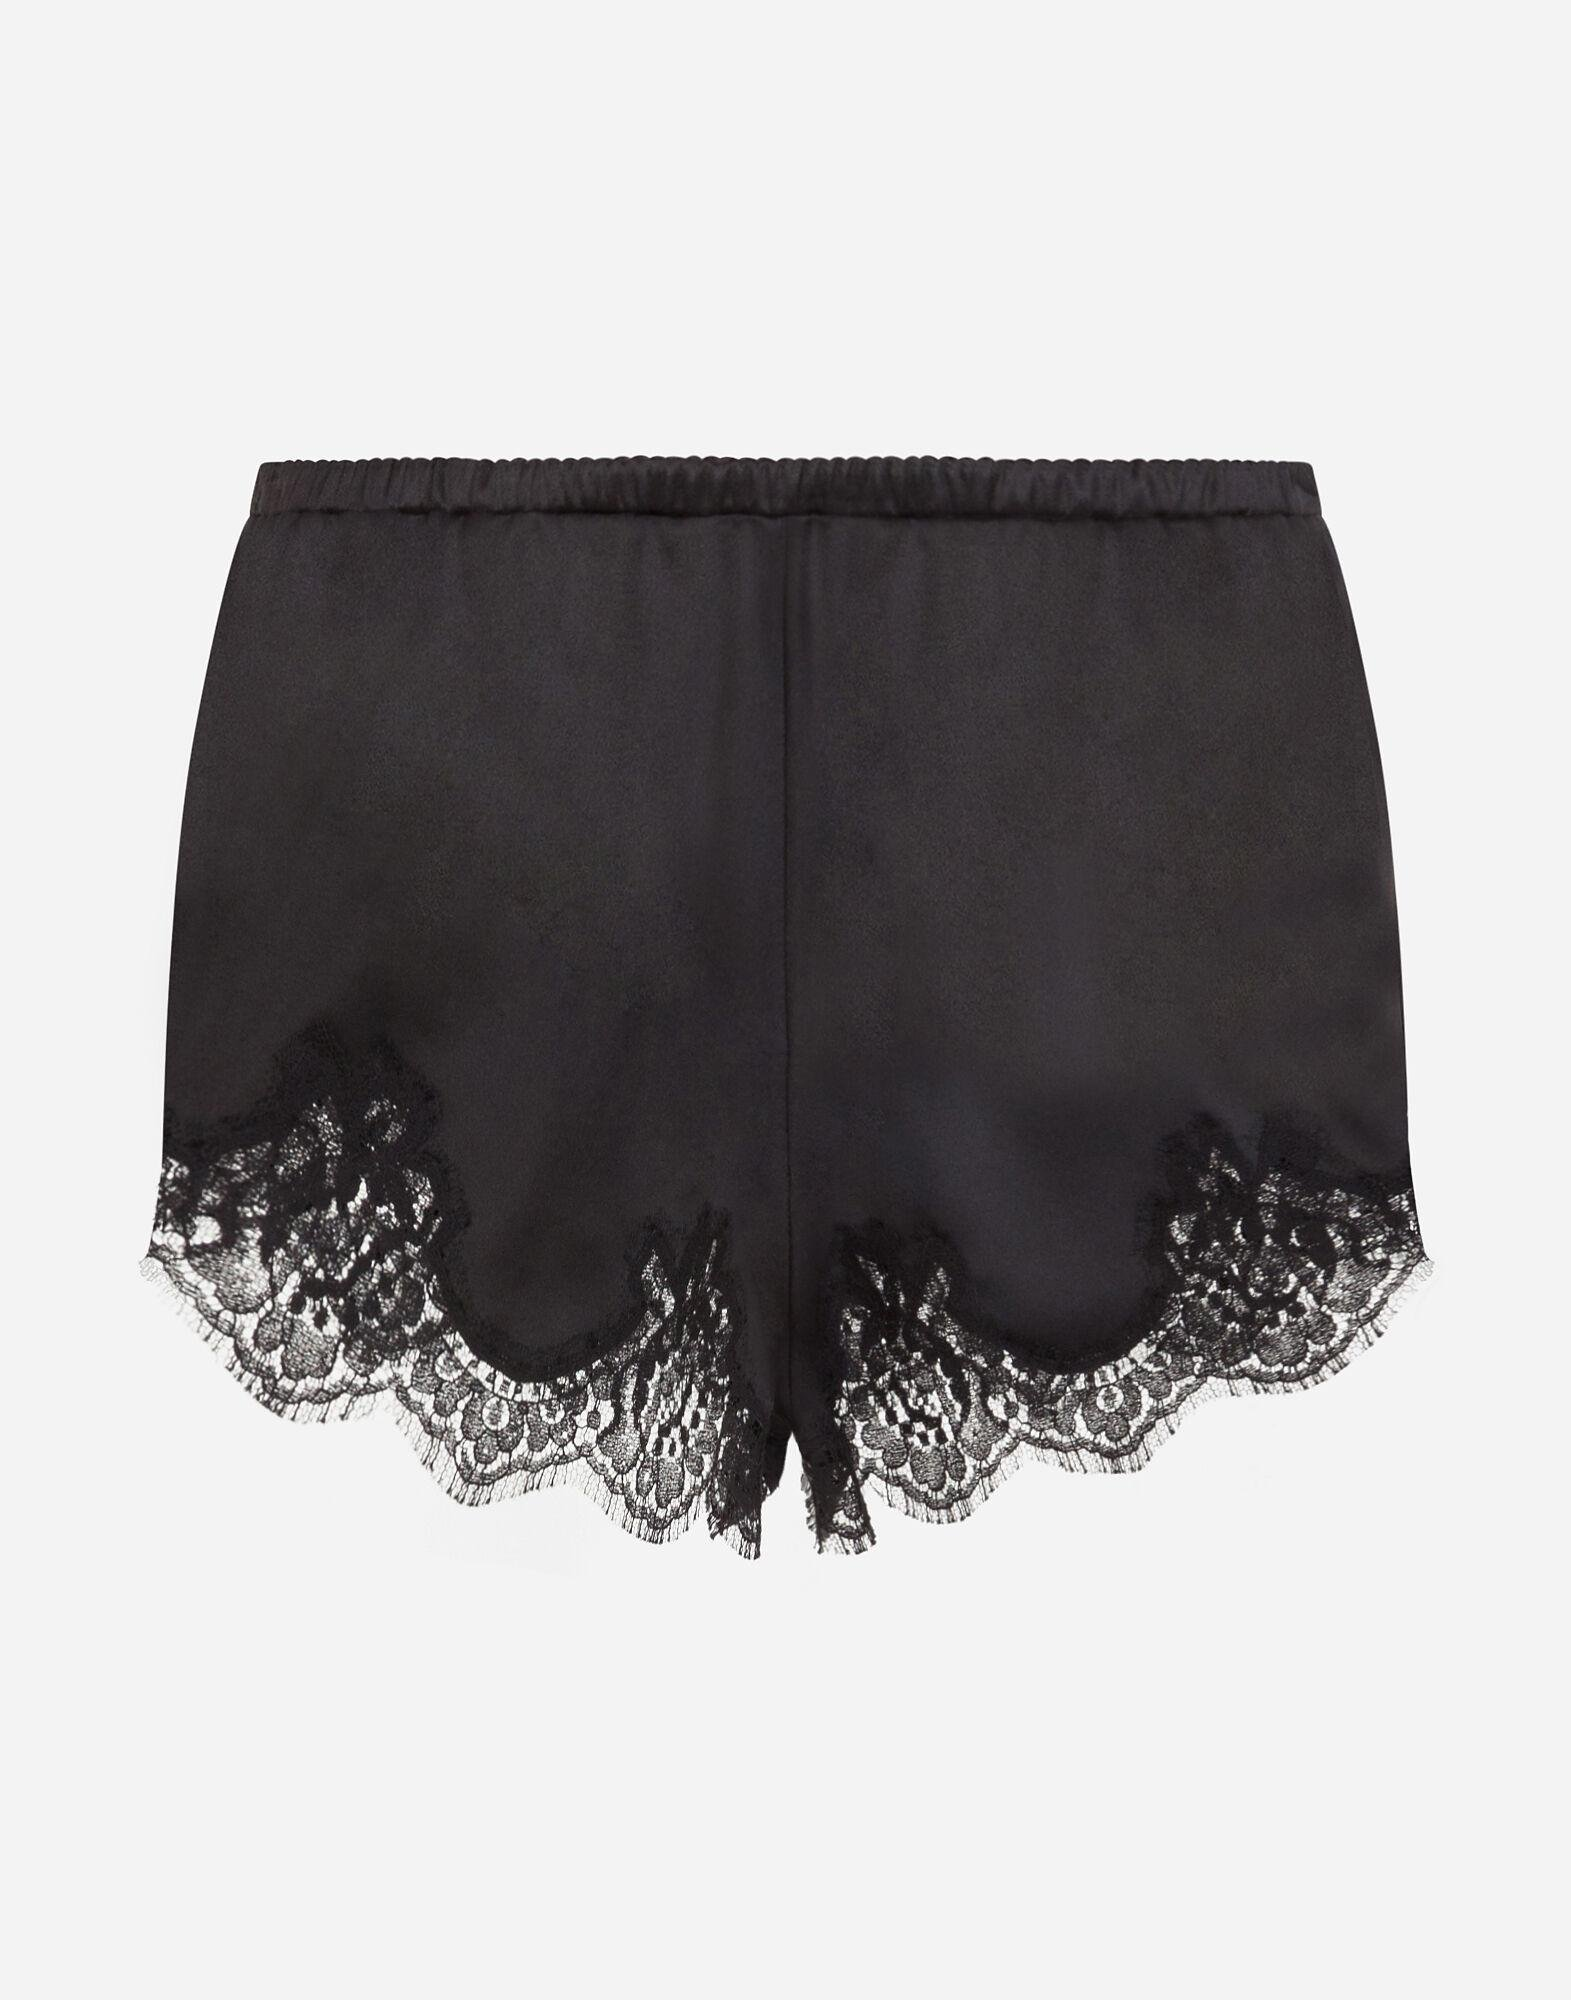 Satin lingerie shorts with lace detailing 1